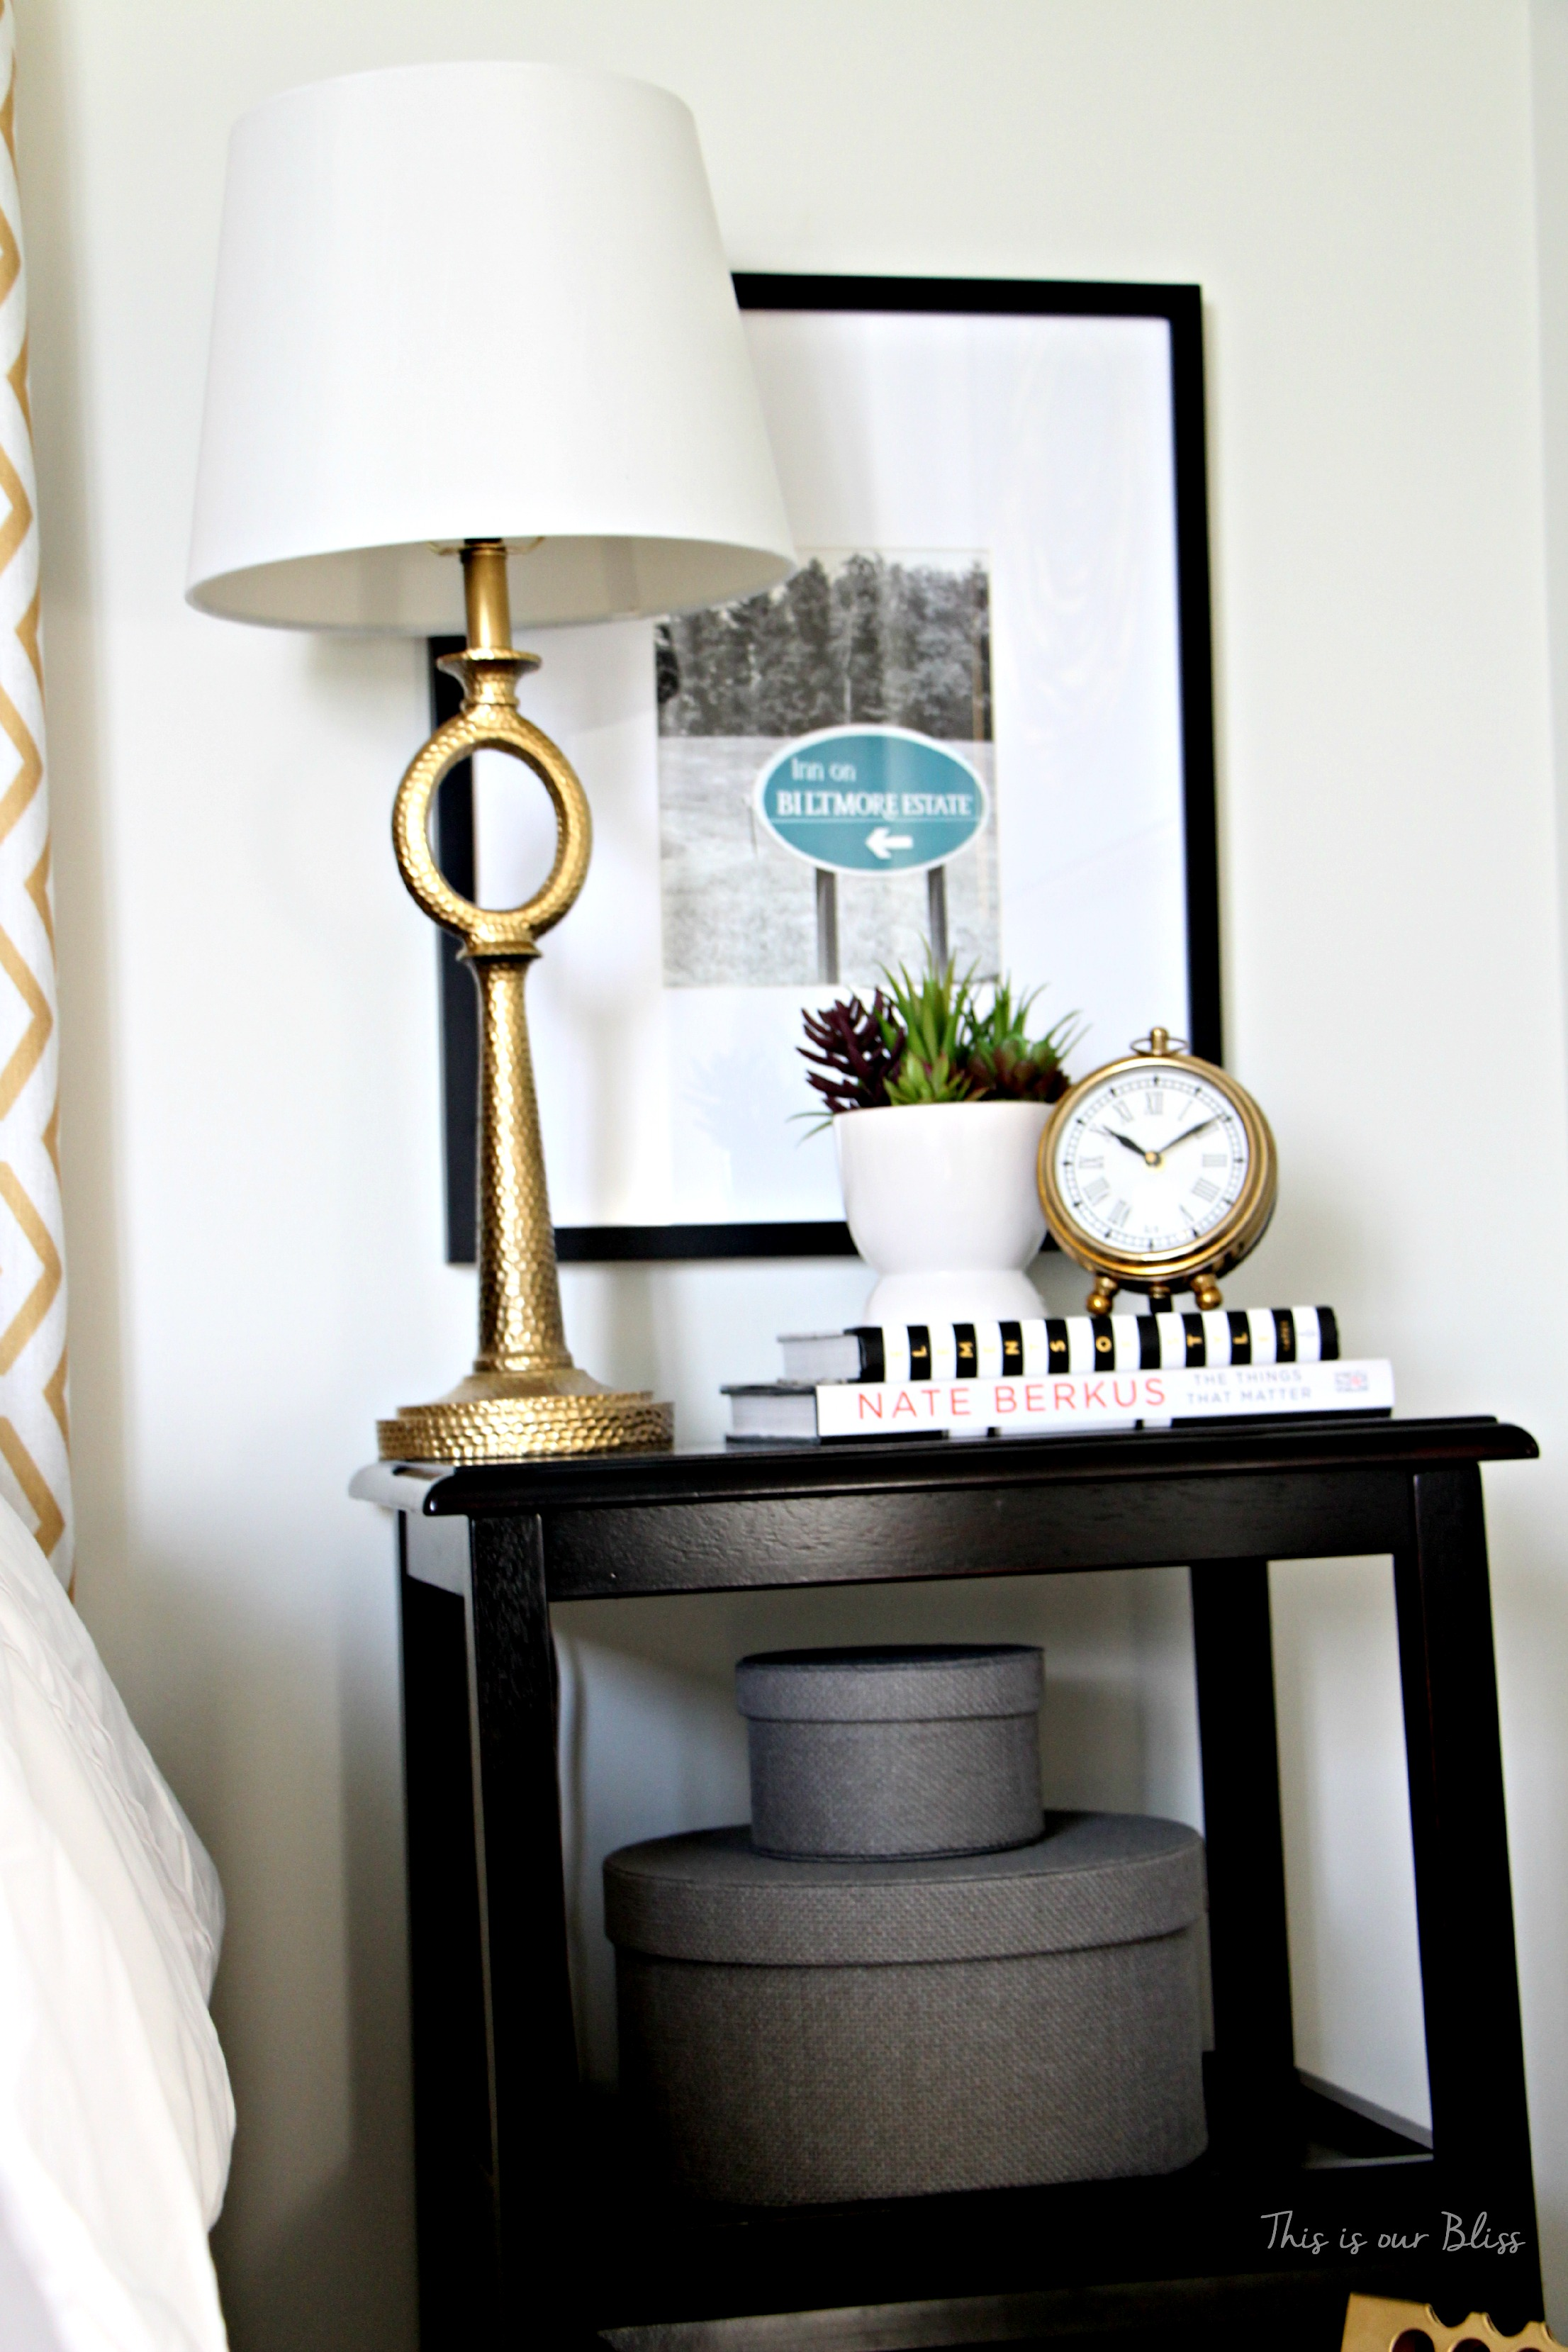 Bedside Table Clocks Our Last Home This Is Our Bliss